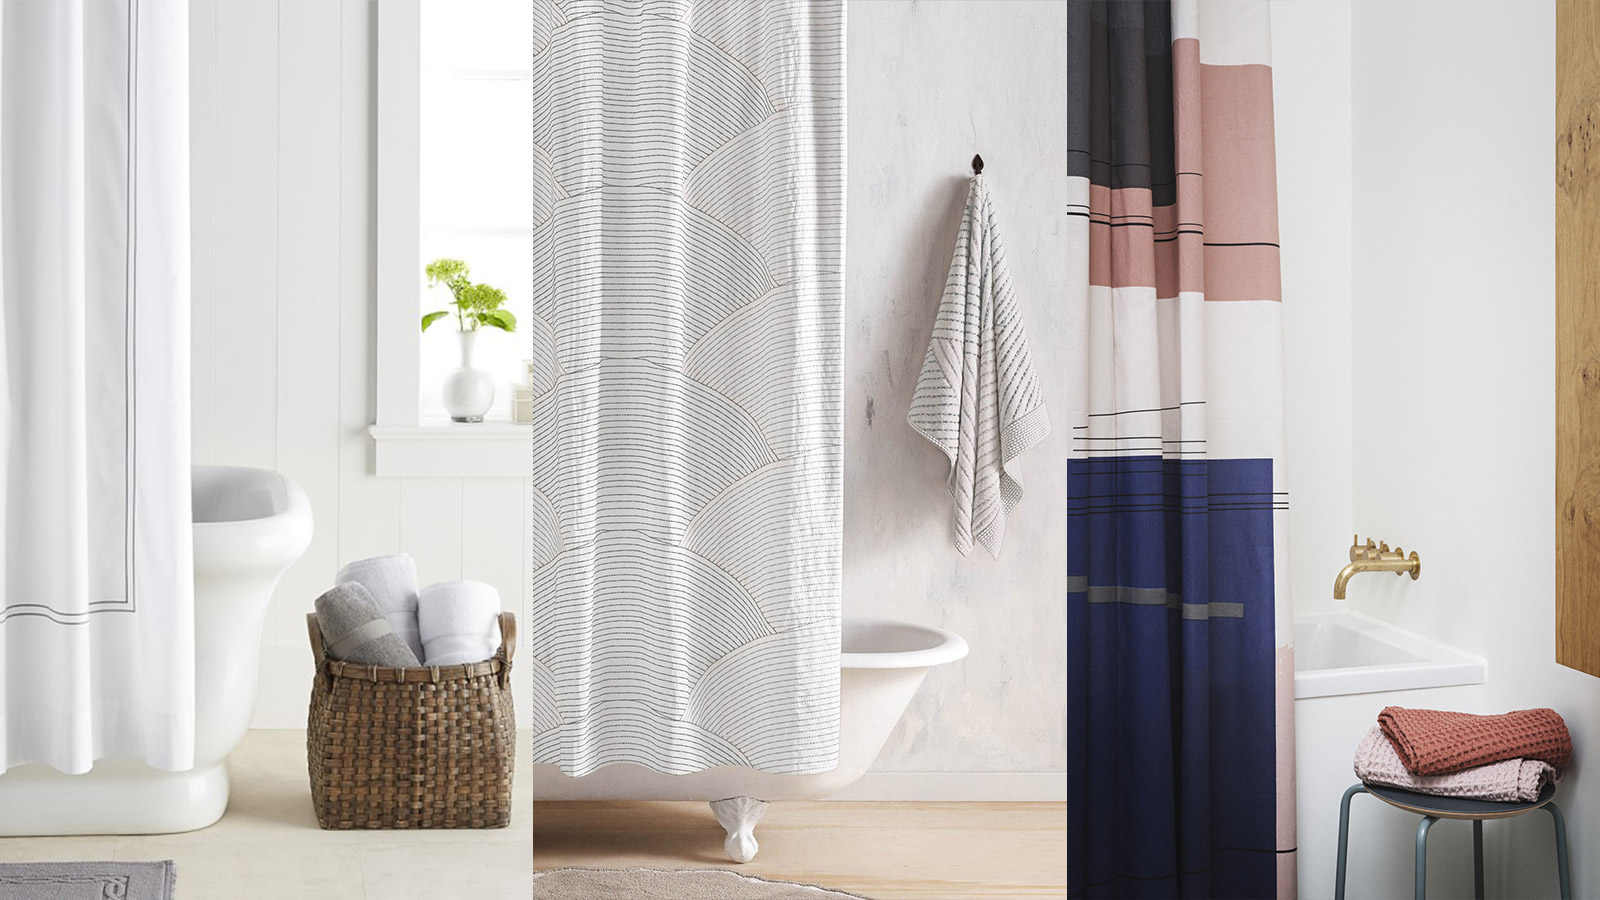 10 stylish shower curtains for a modern bathroom 10. Black Bedroom Furniture Sets. Home Design Ideas